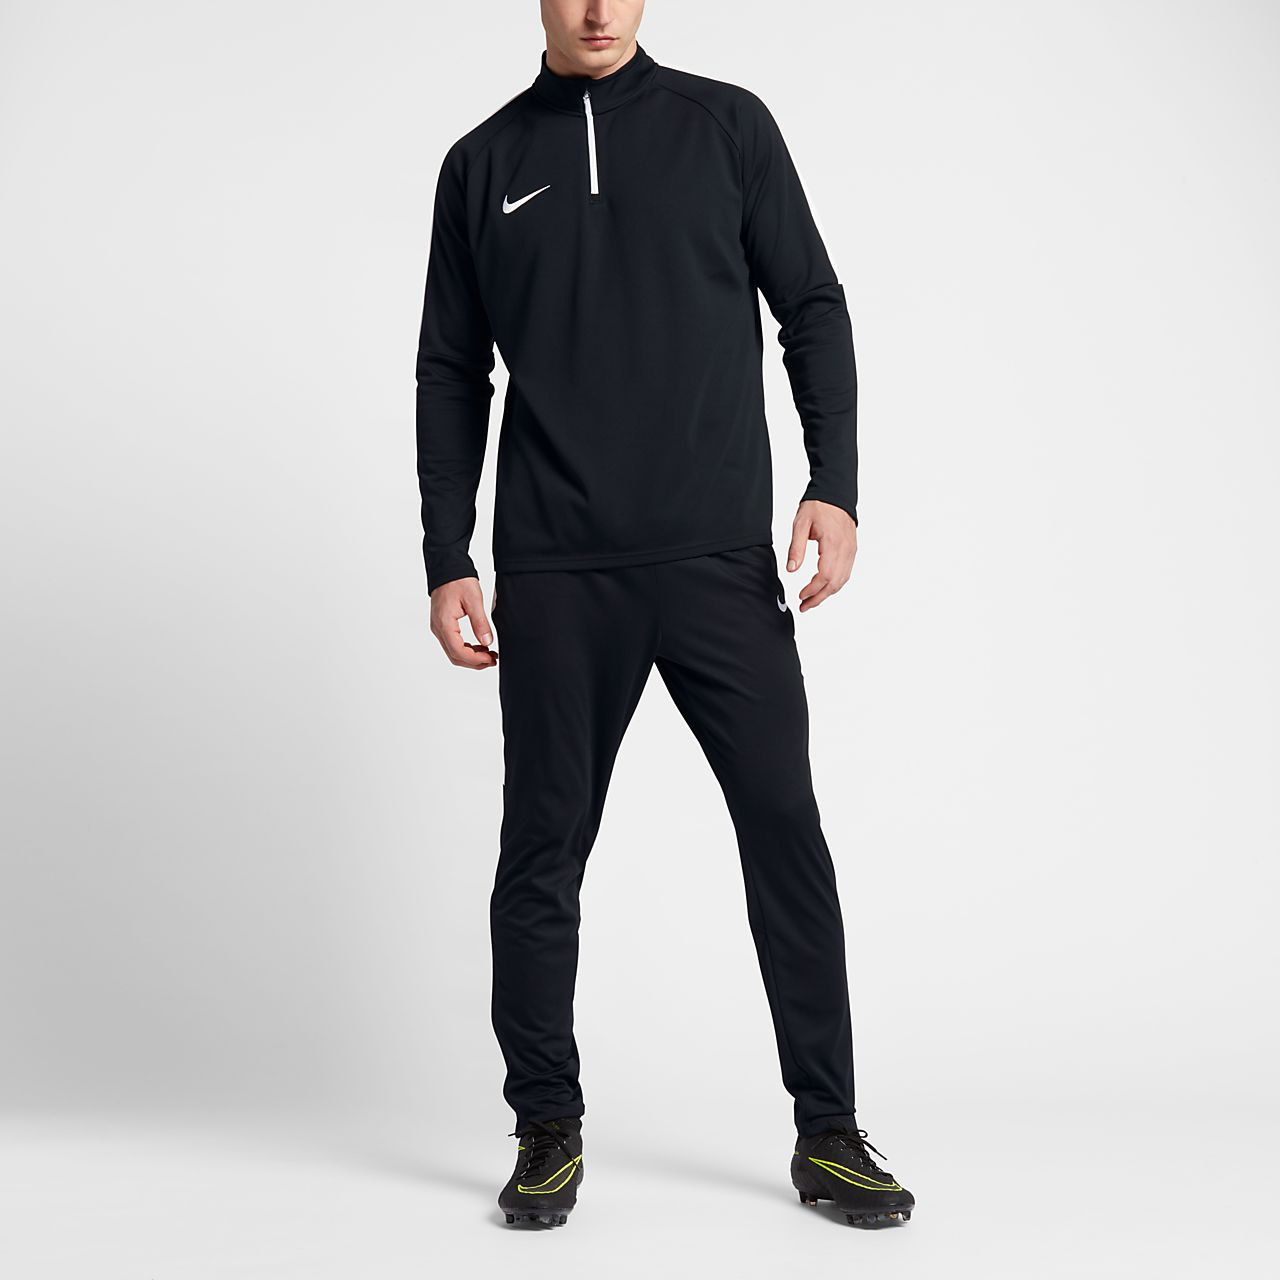 quality design ee3e2 53d9c ... Nike Dri-FIT Academy Men s 1 4 Zip Football Drill Top